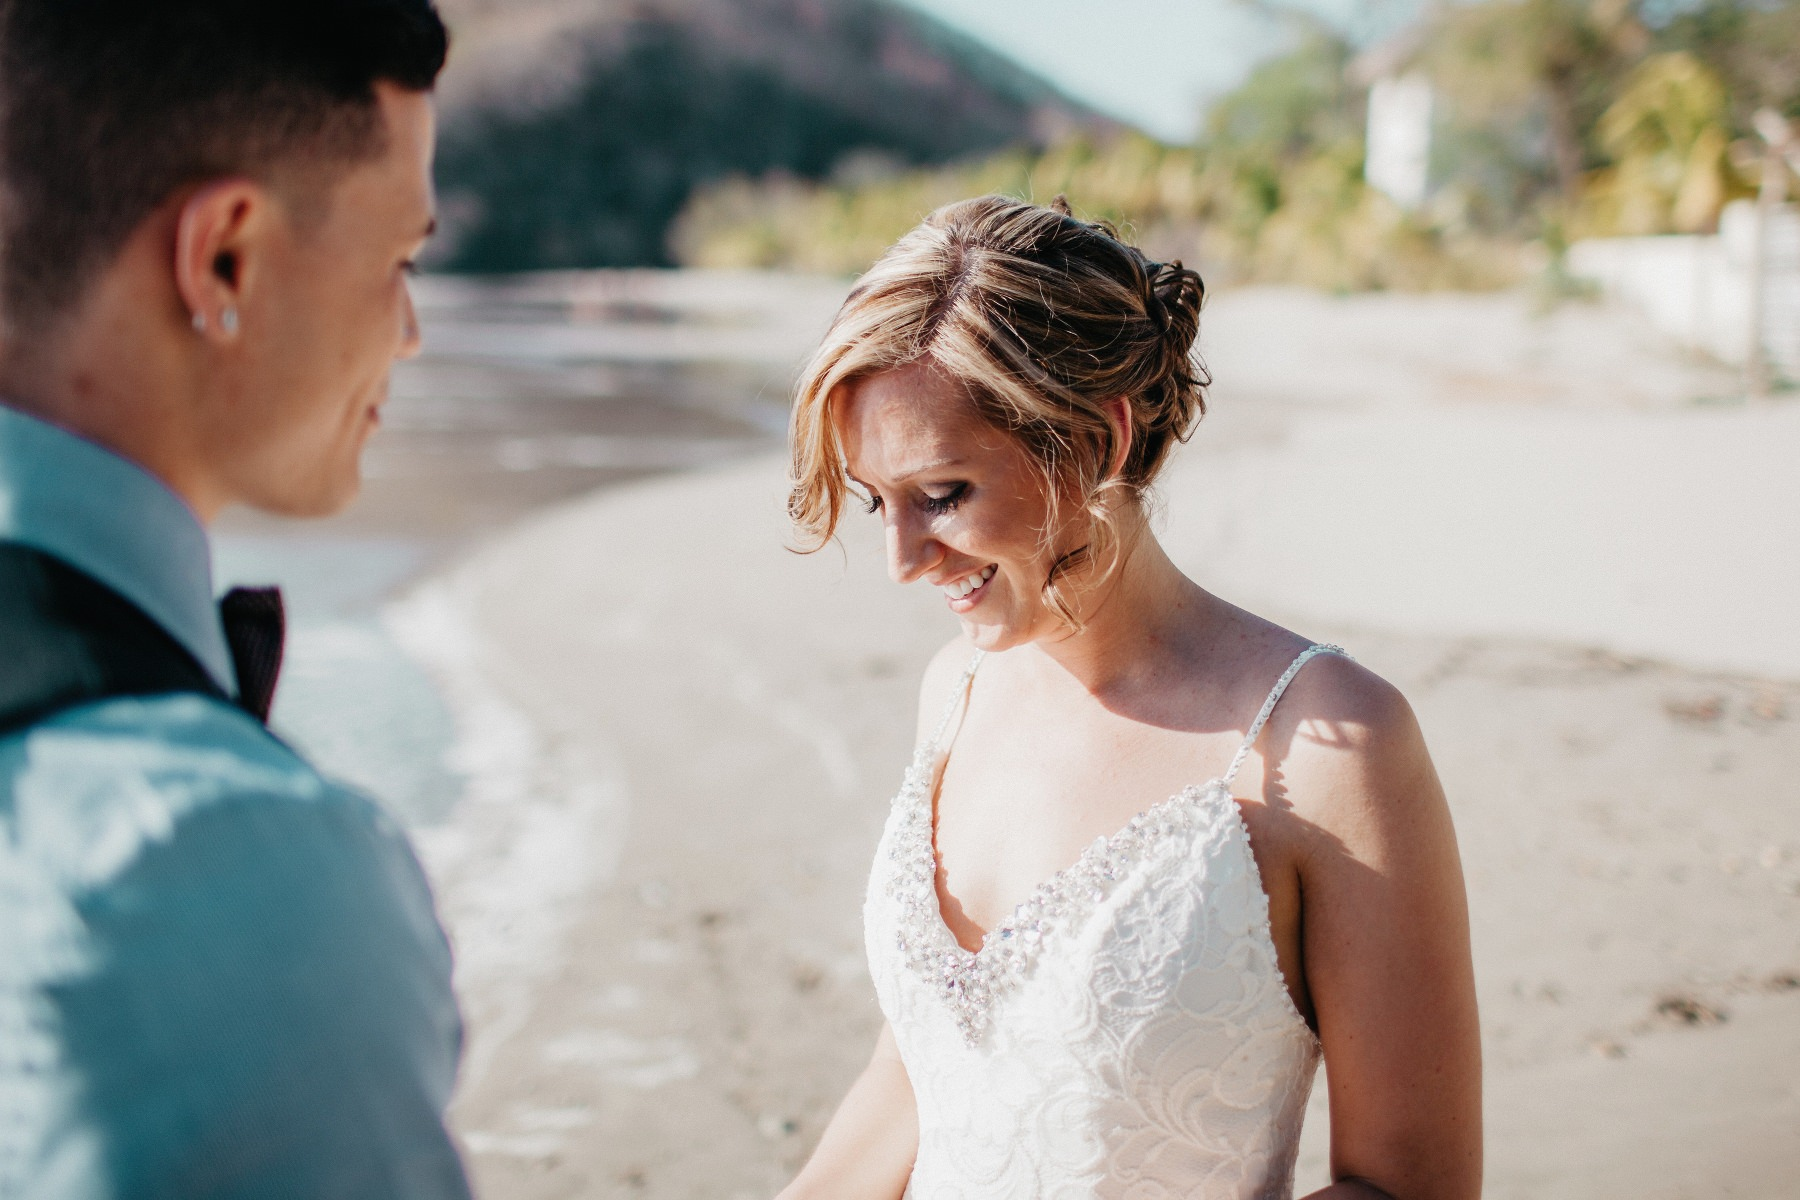 Beautiful bride during beach elopement in Costa Rica. Wedding dress details